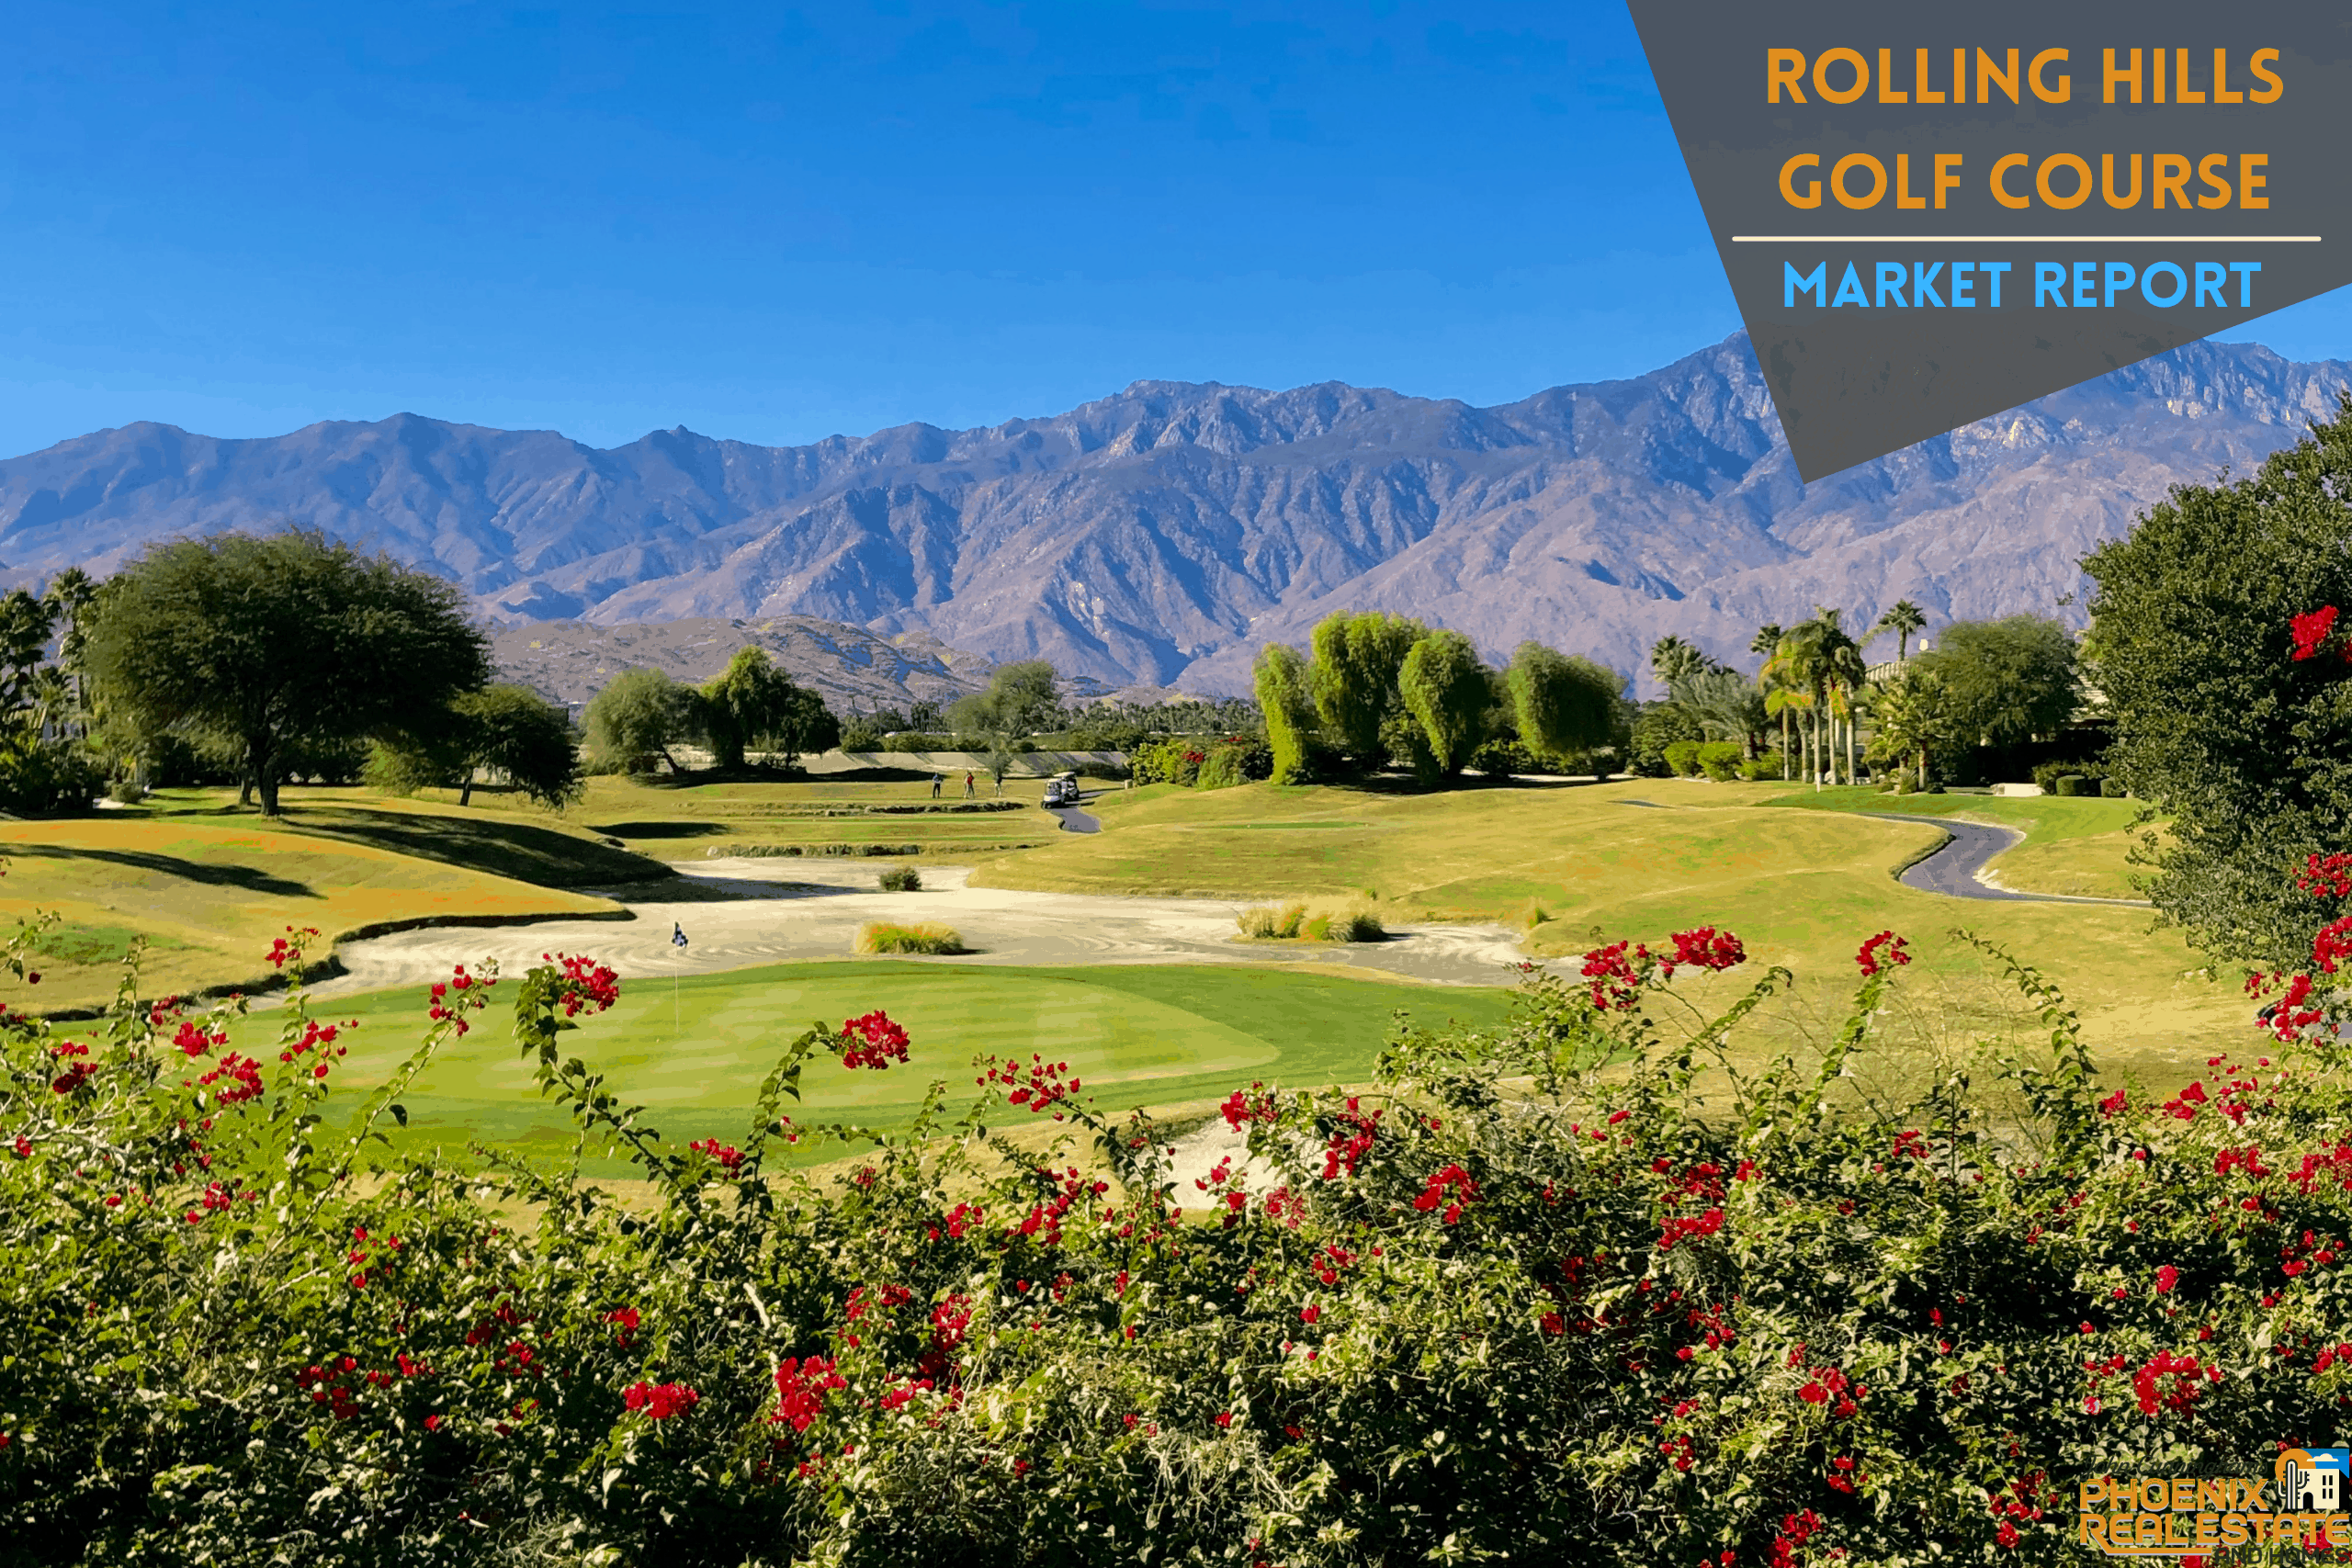 Rolling Hills Golf Course Market Report